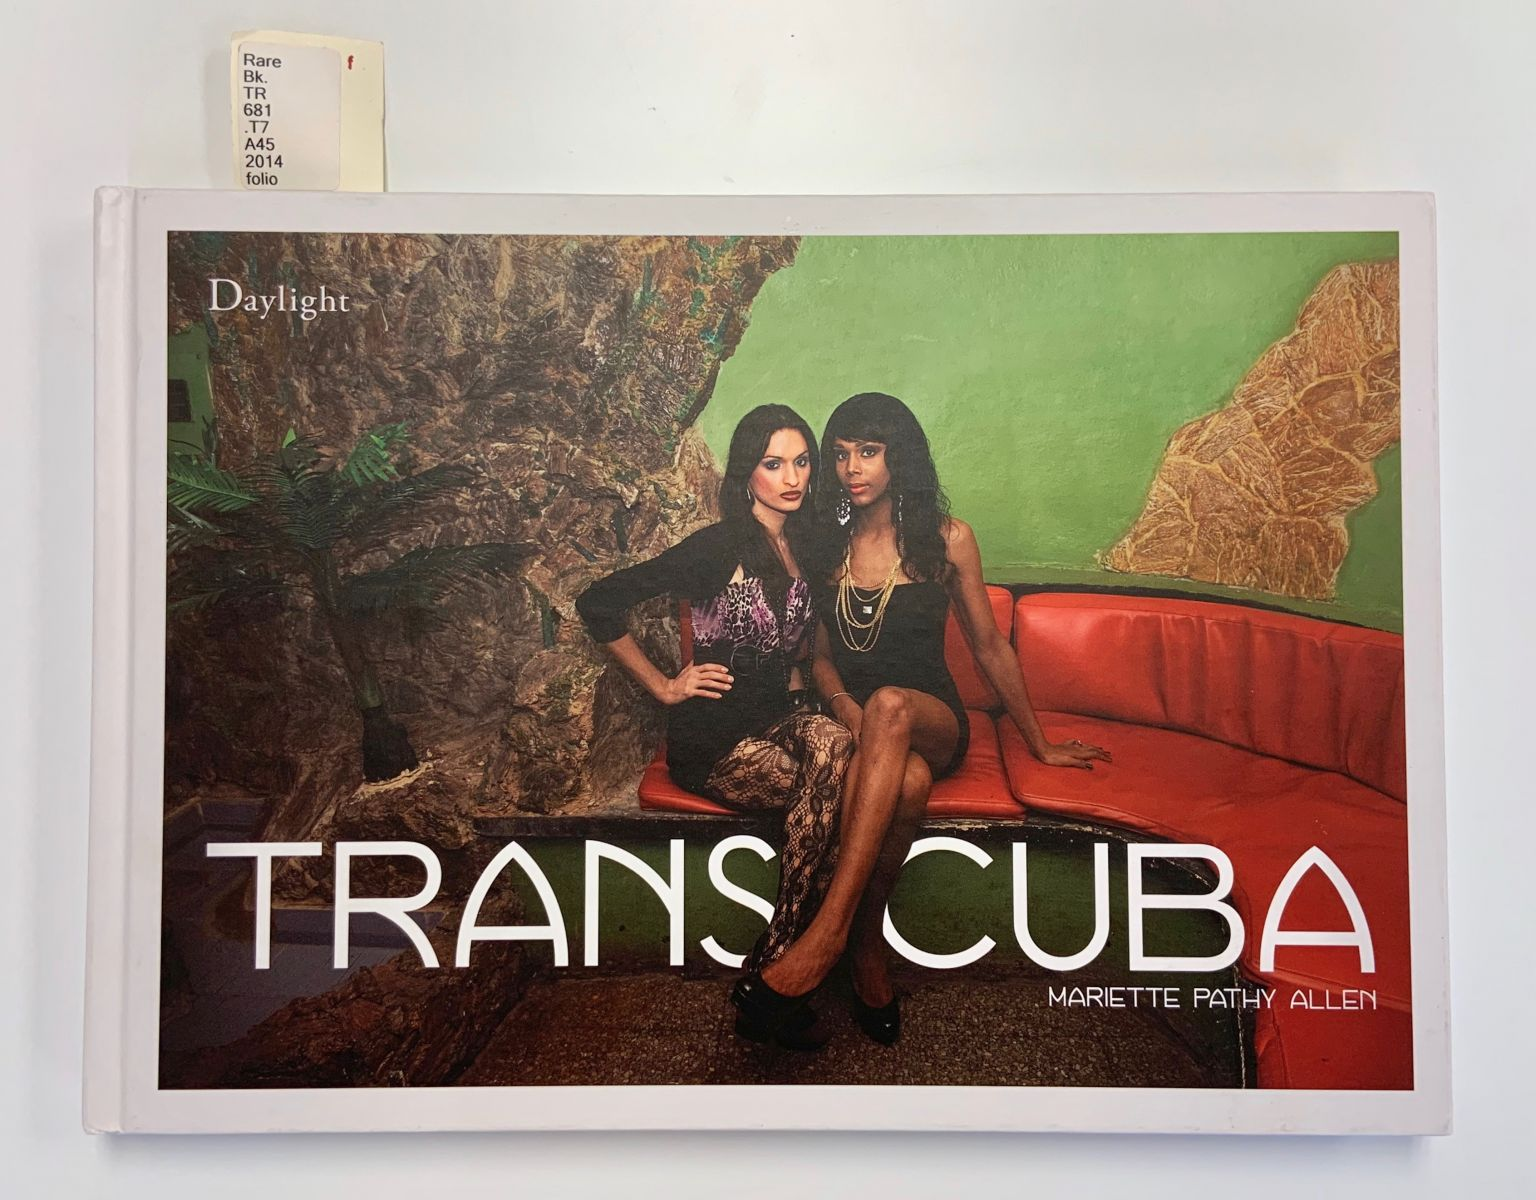 Cover of TransCuba, featuring two trans Cuban individuals sitting close together on a red sofa. The subjects stare at the camera and wear classy outfits, including layered jewelry.